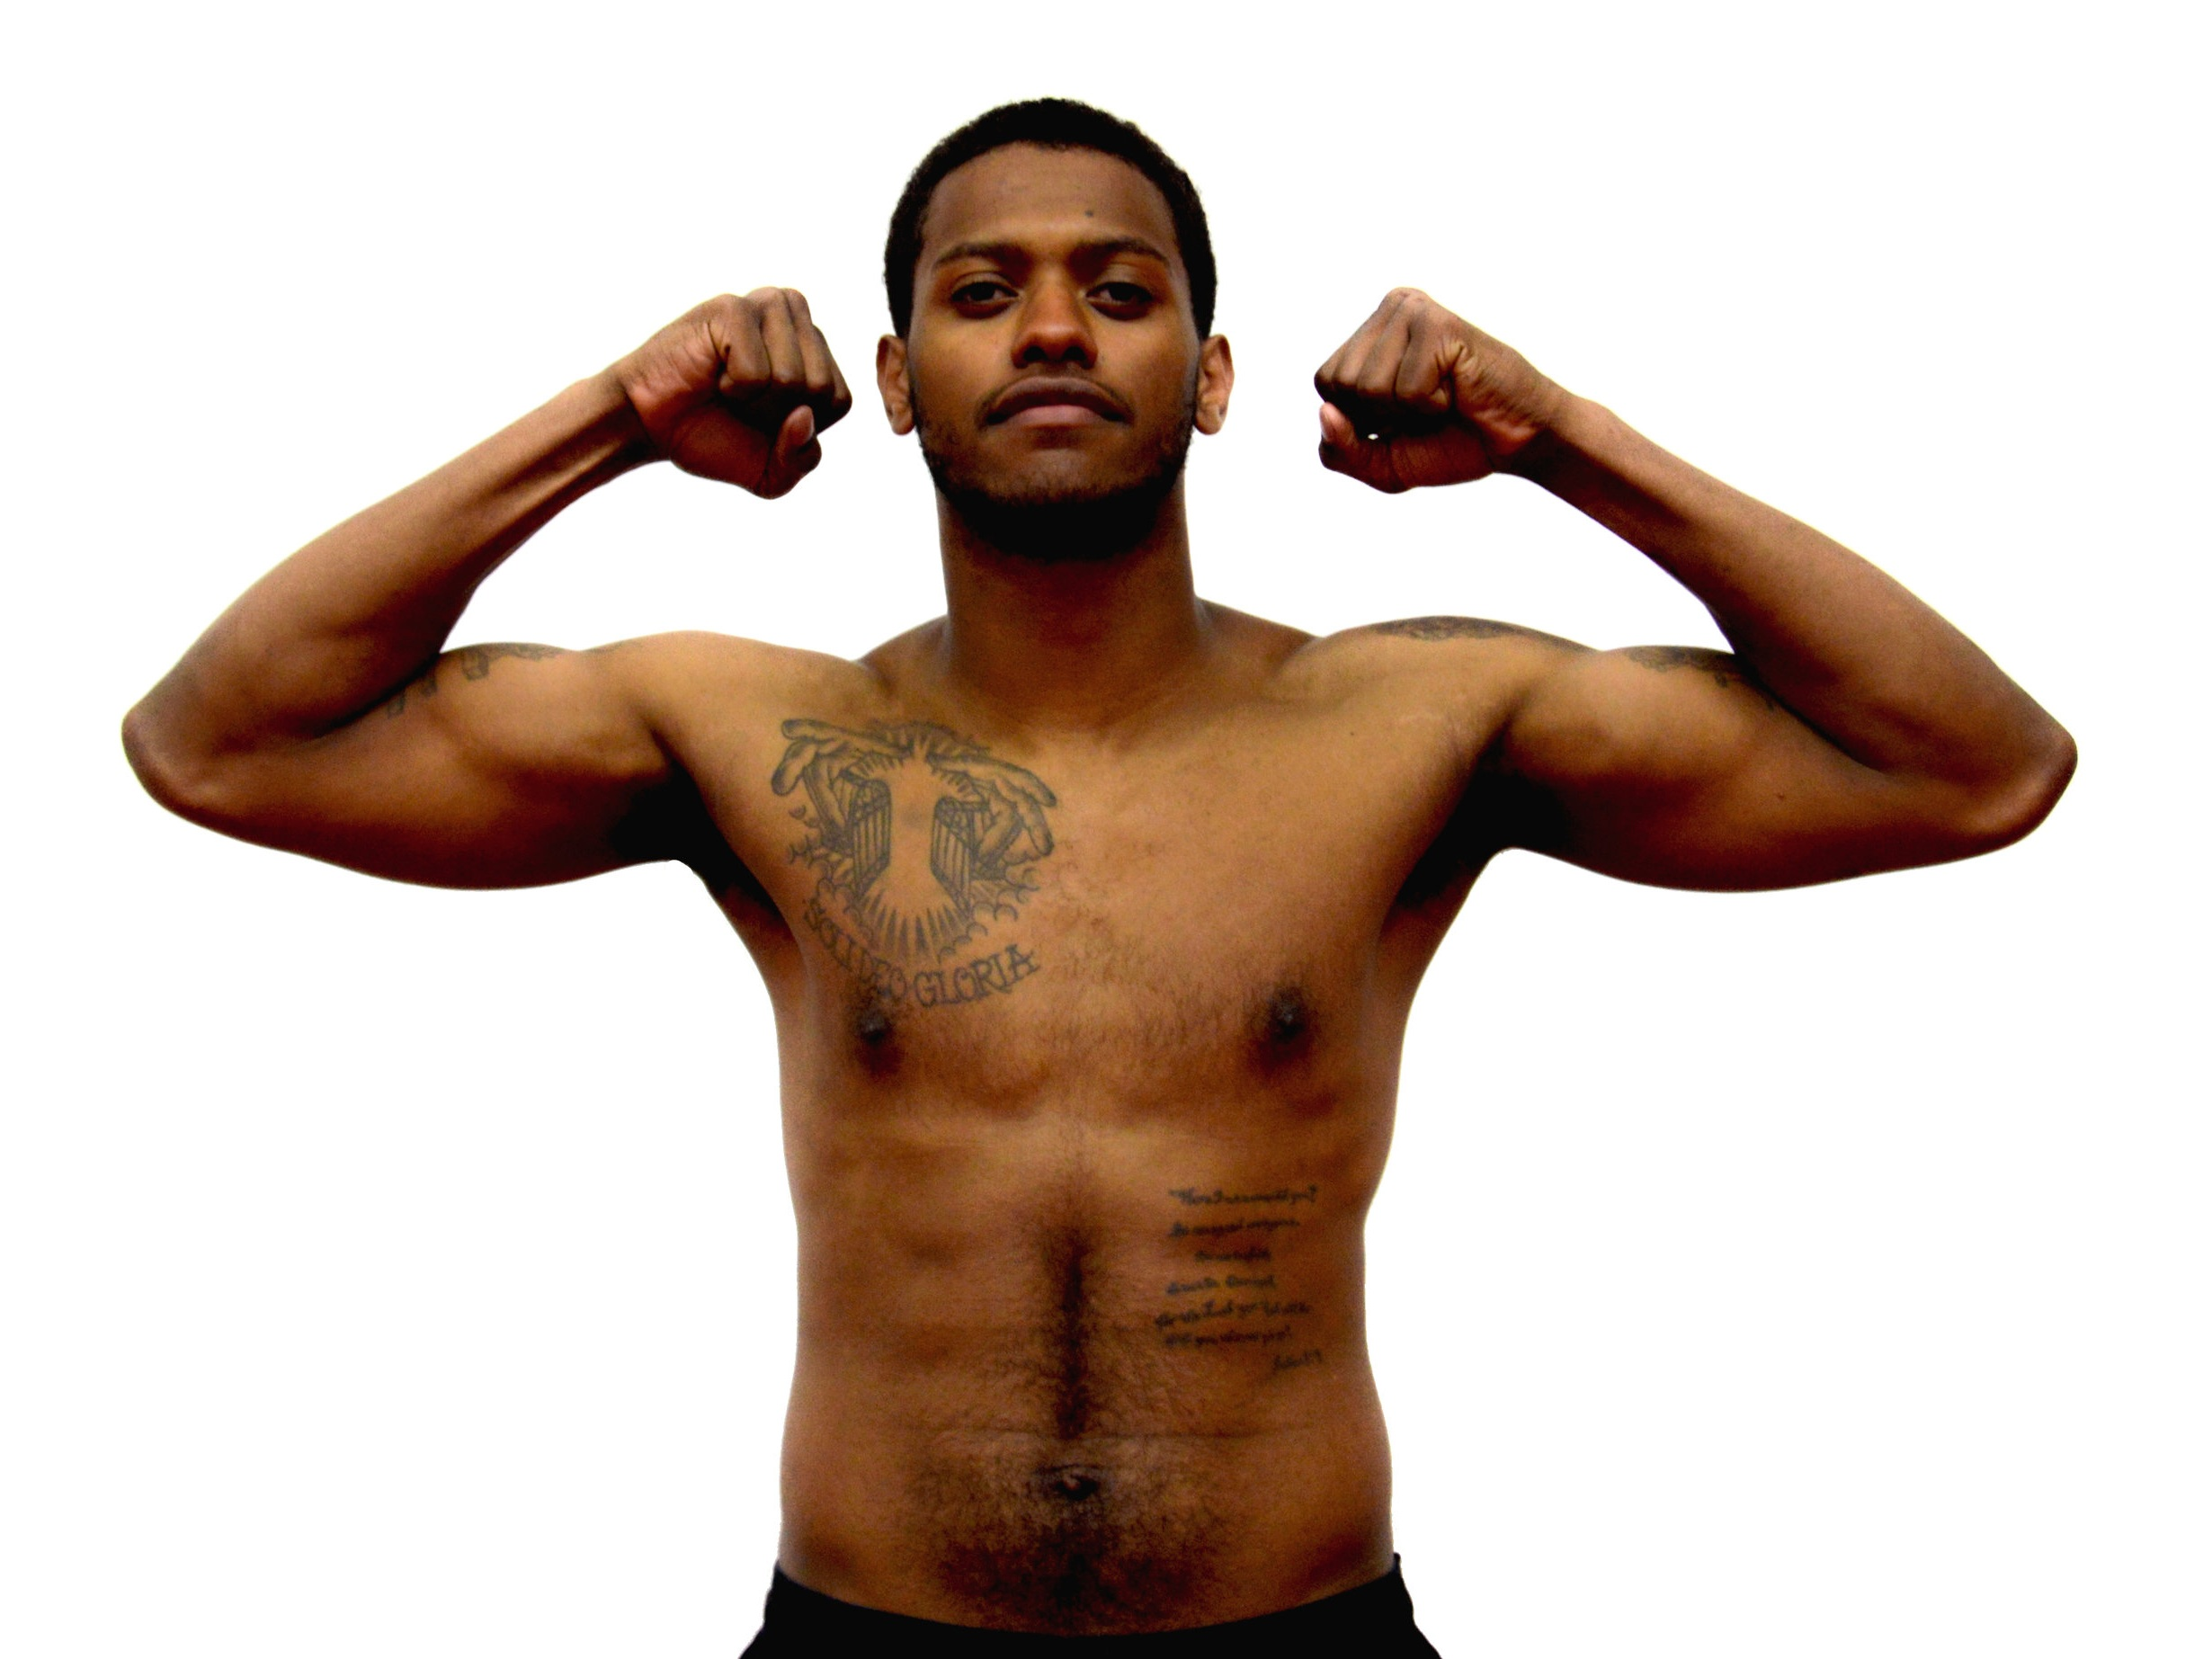 Erick Blue   - Amateur Boxing & MMA Fighter  - 170lbs   -    Upcoming Bout:    VFS 5 - MMA - REEDLEY, CA - 09/28/19 - TICKETS ON SALE SOON!